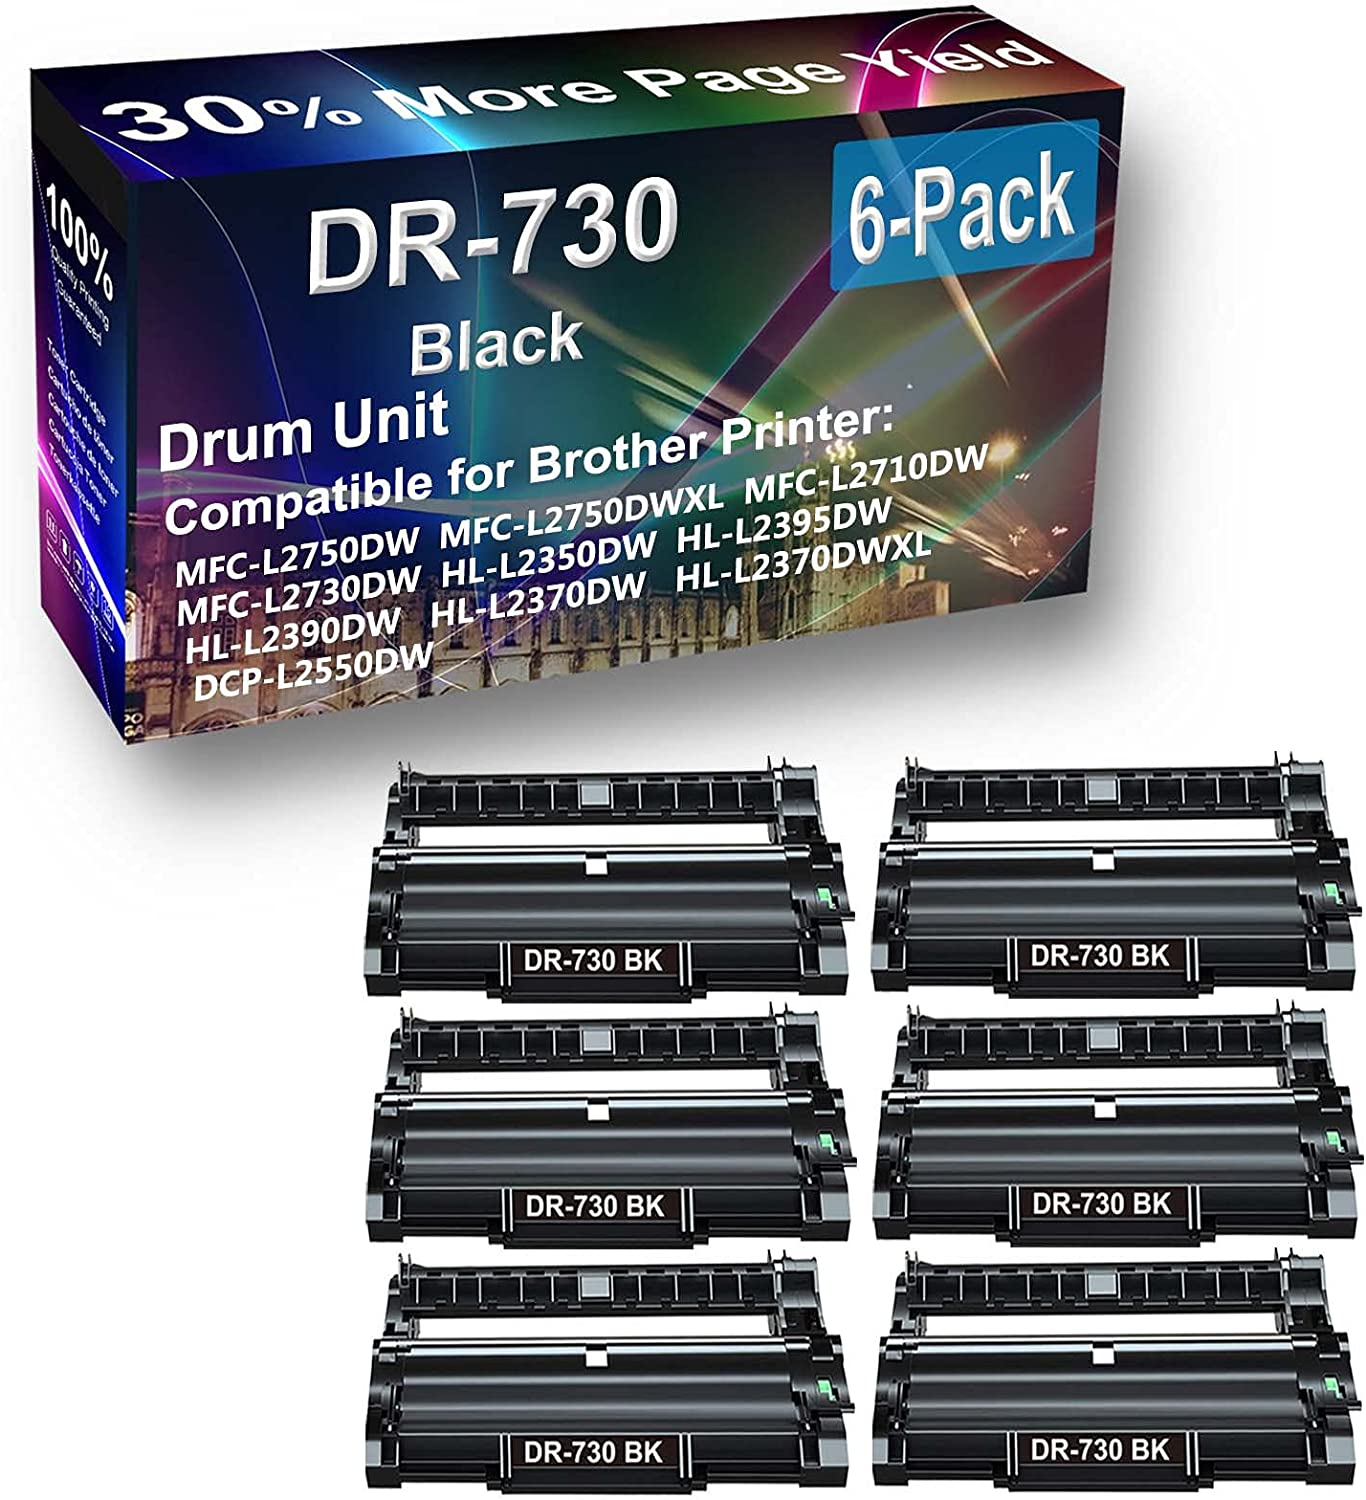 6-Pack Compatible Louisville-Jefferson County Mall Drum Max 75% OFF Unit Black Replacement Brother for DR73